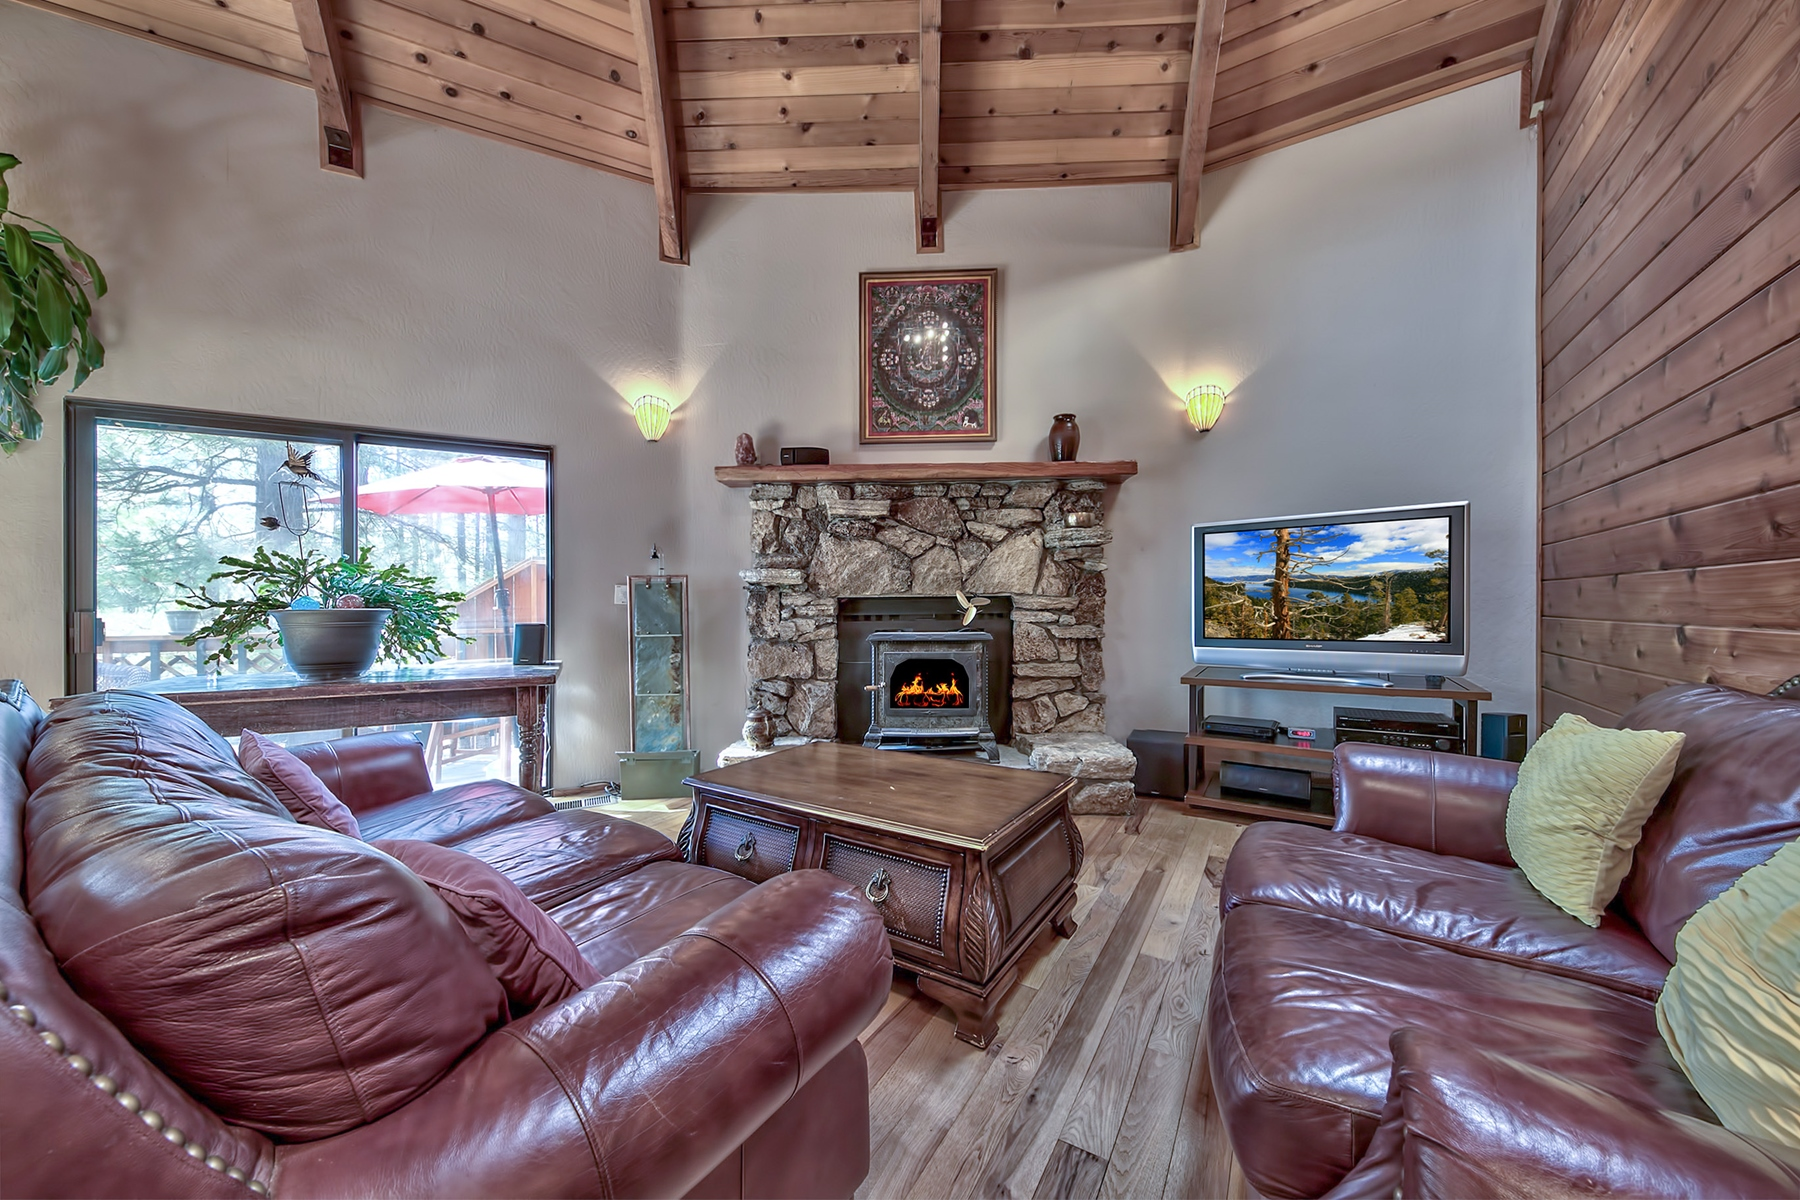 Single Family Home for Active at 2363 Marshall Trail, South Lake Tahoe, CA 2363 Marshall Trail South Lake Tahoe, California 96151 United States